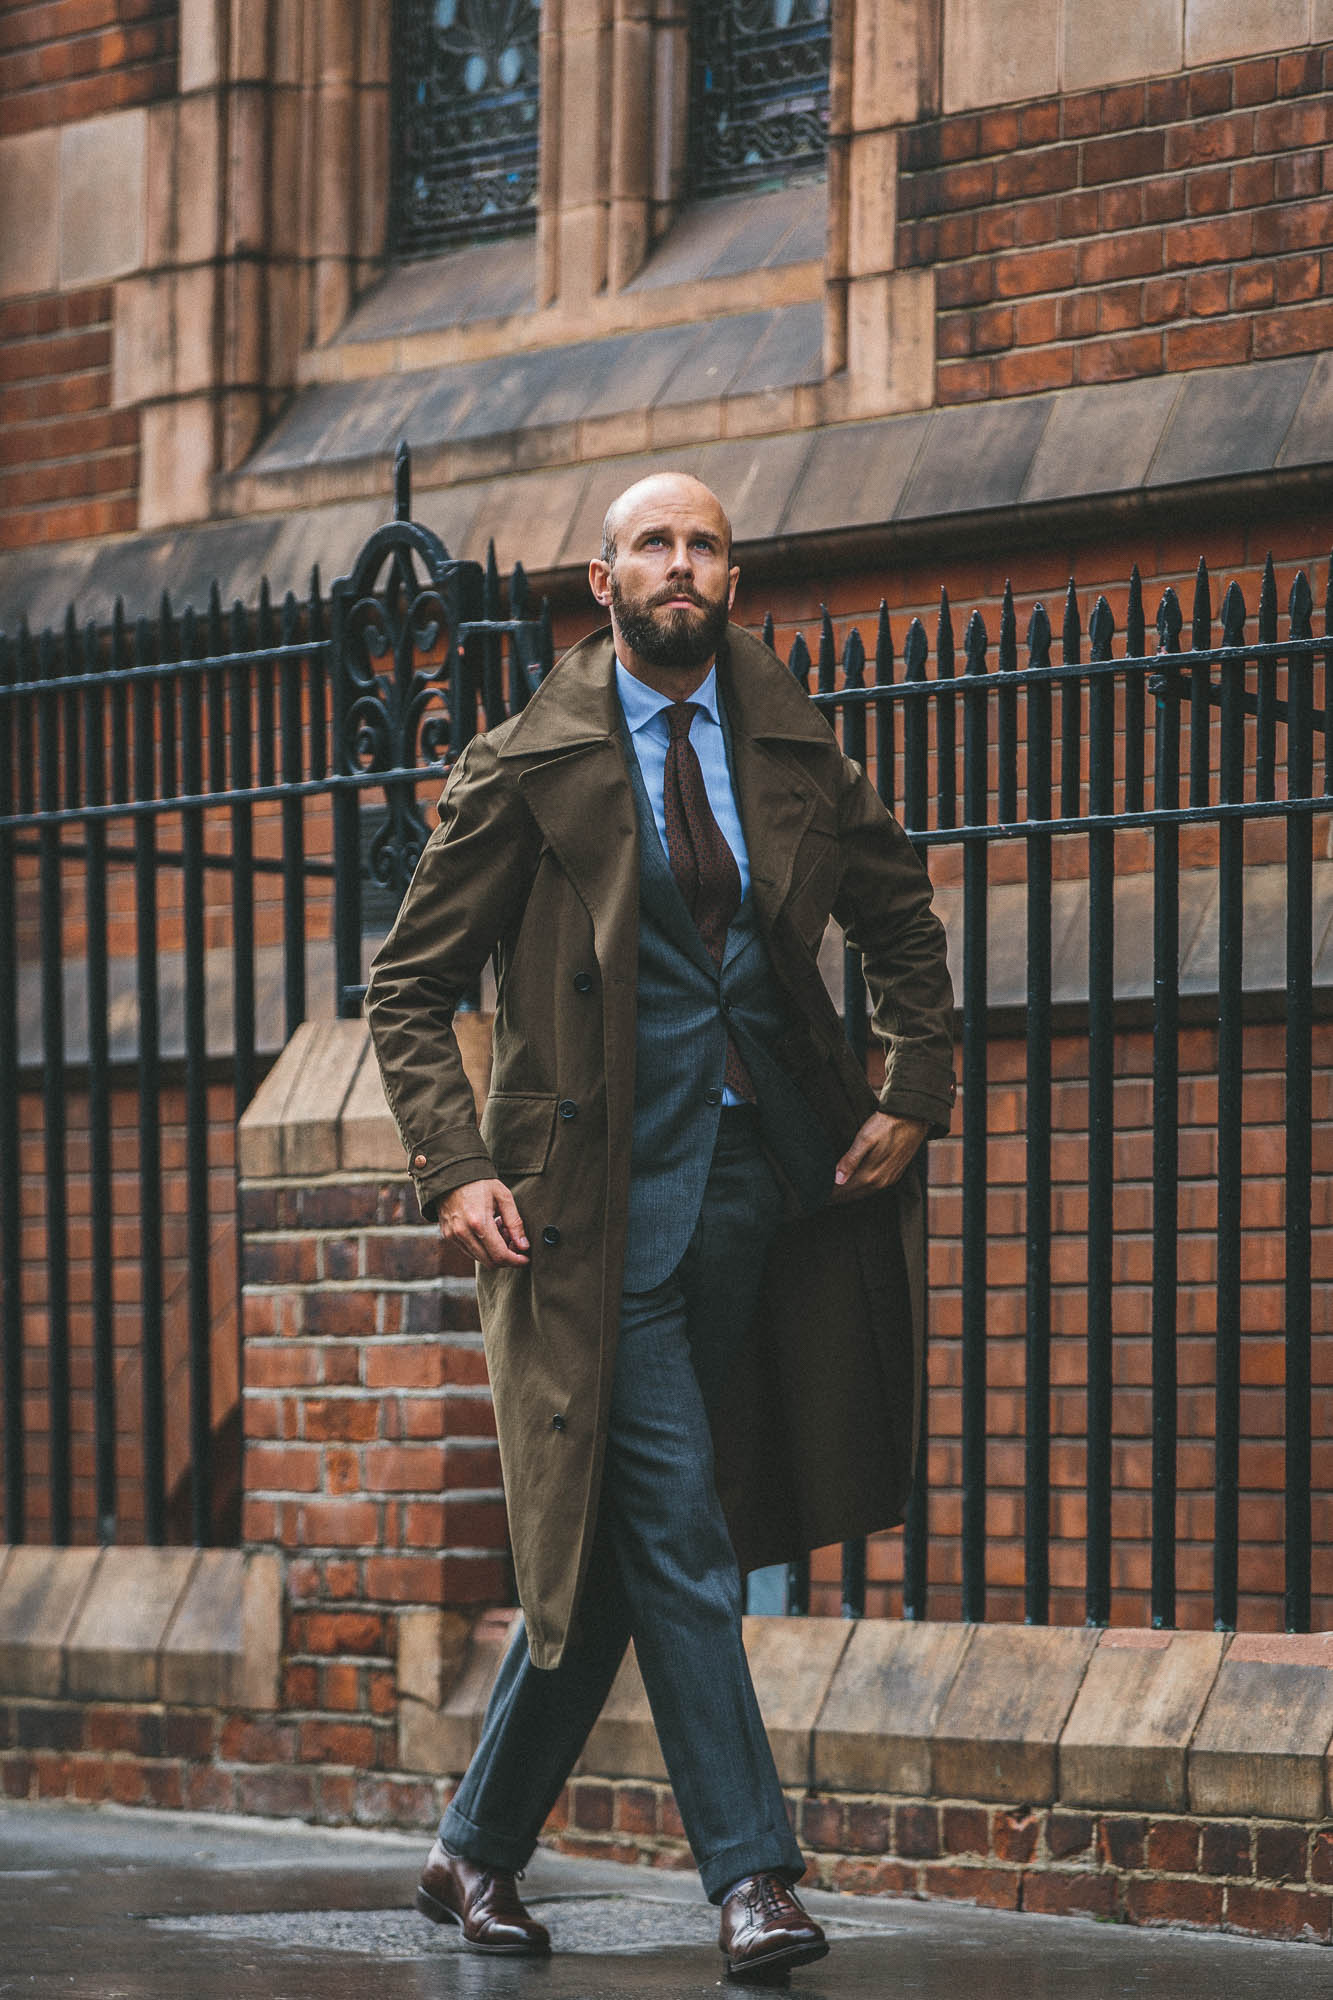 Introducing: The Permanent Style trench coat – Permanent Style